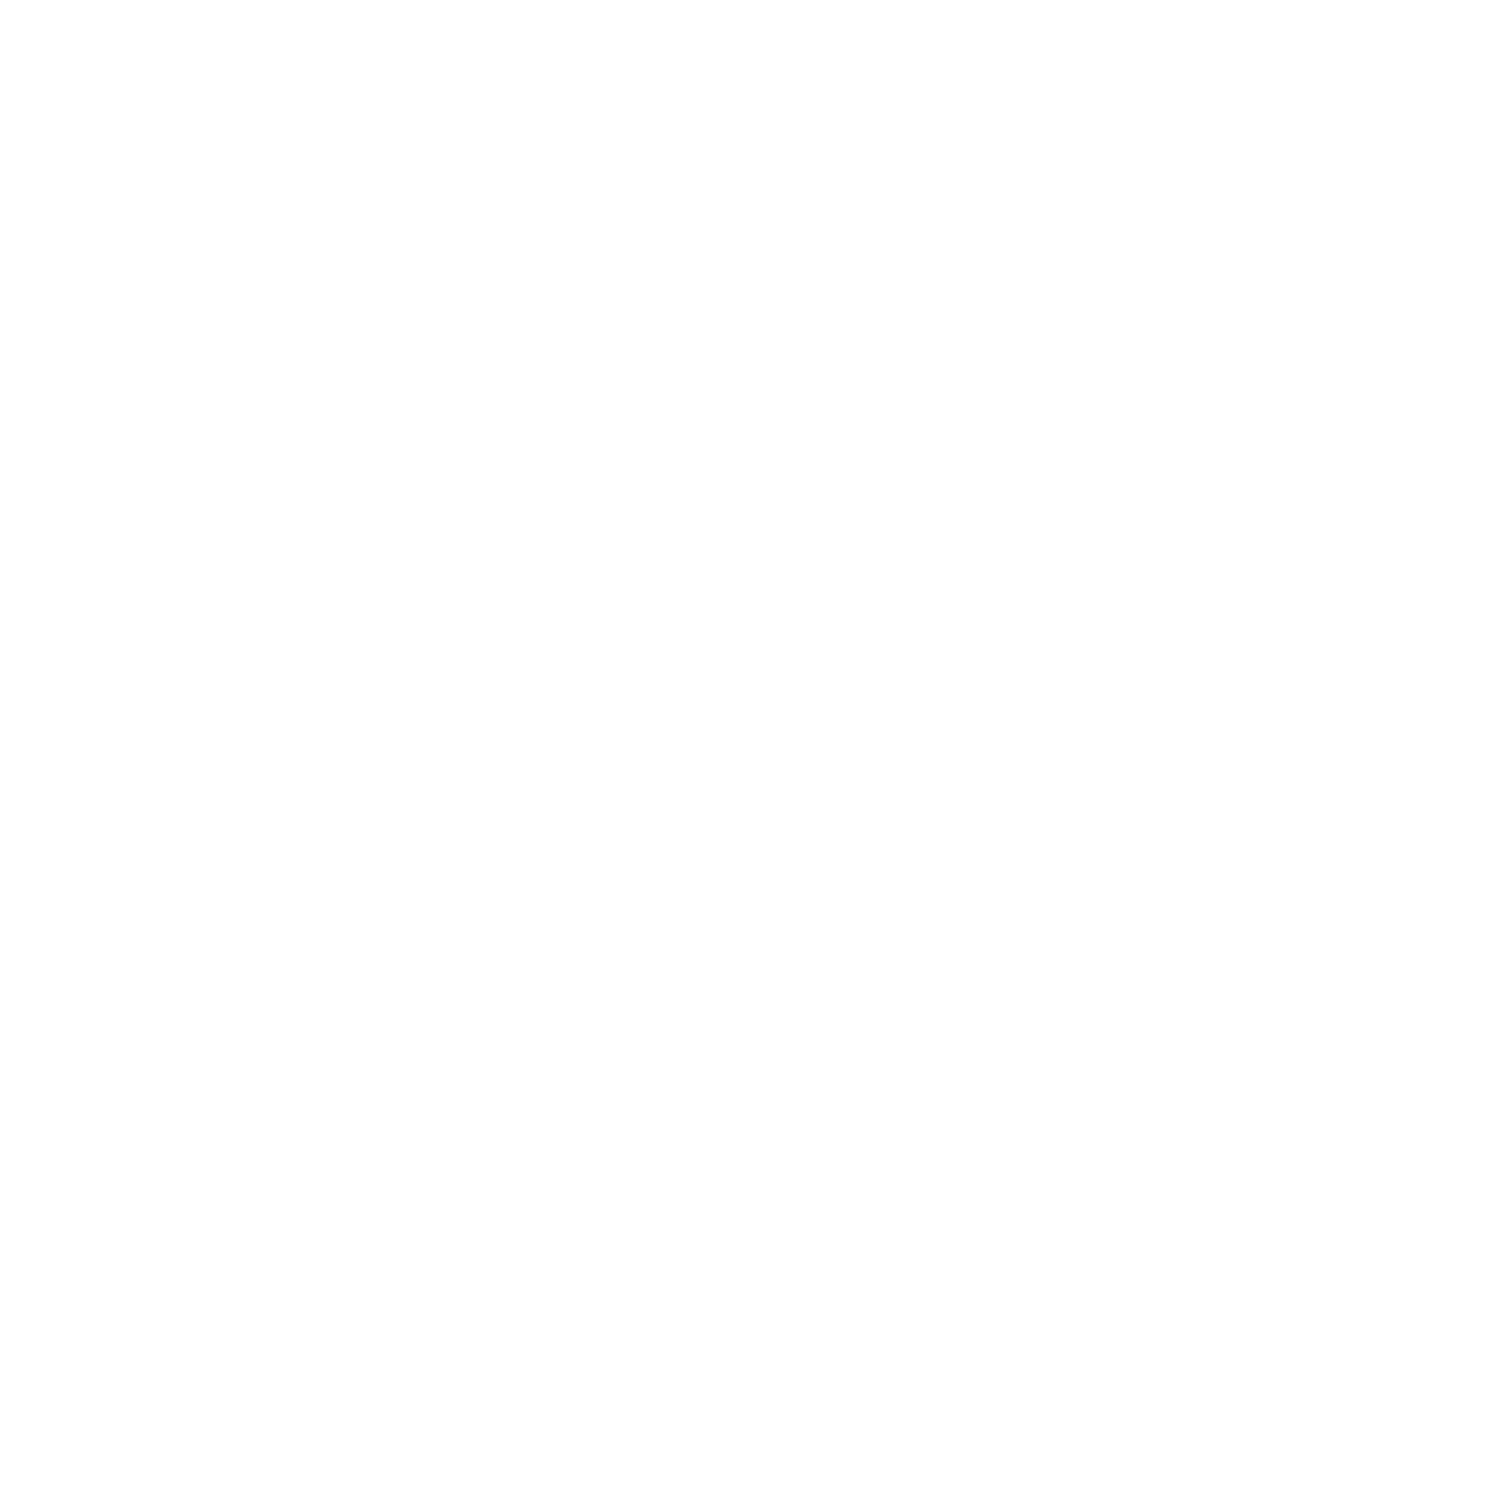 Get bonuses at the best betting websites and place bets on IPL 2021 events.